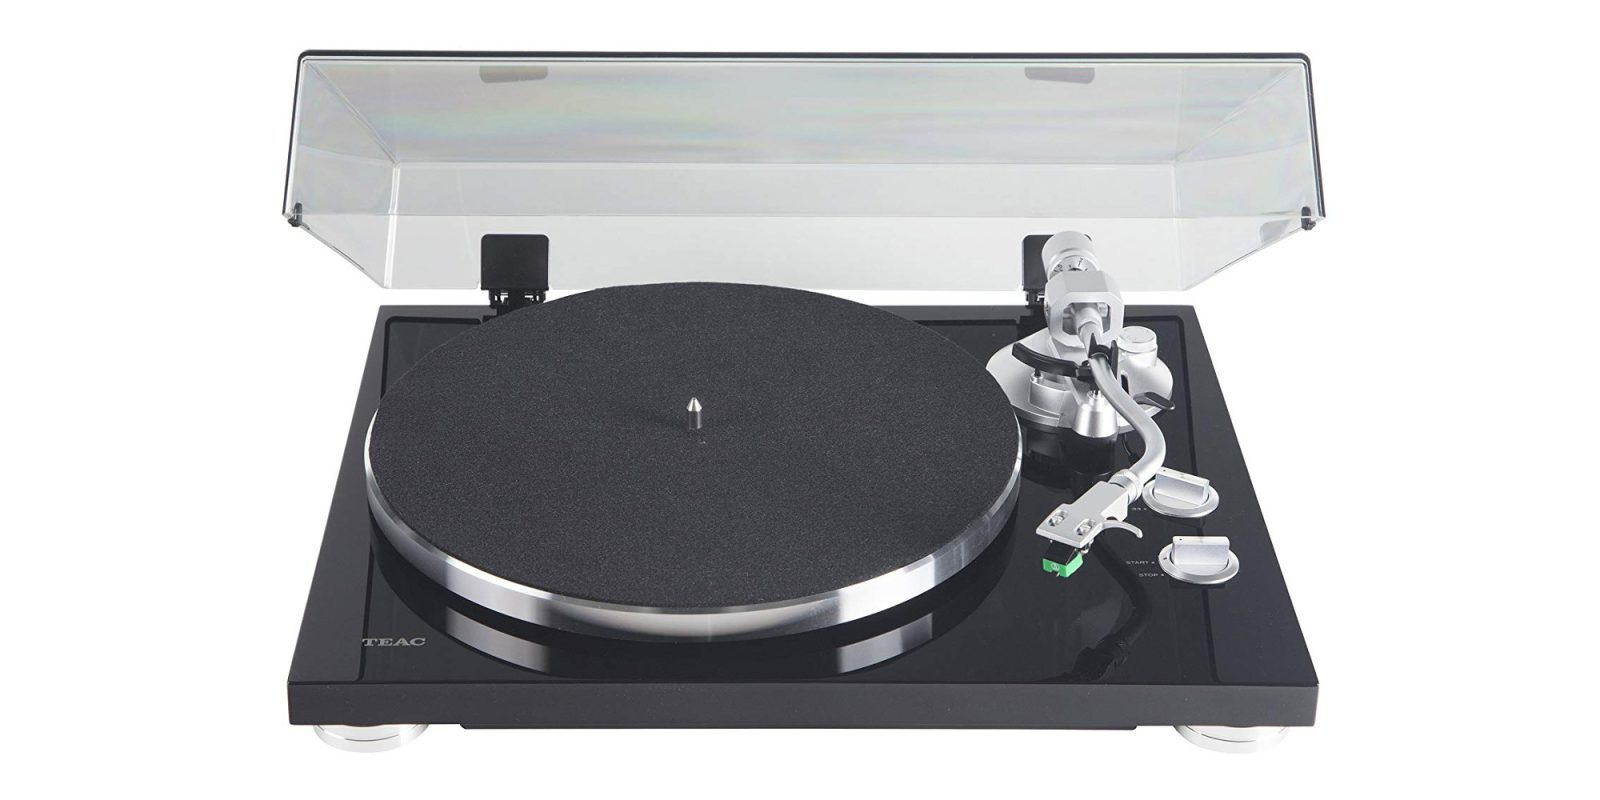 Teac's USB-equipped Turntable with die-cast platter now $169 (Reg. $230+)